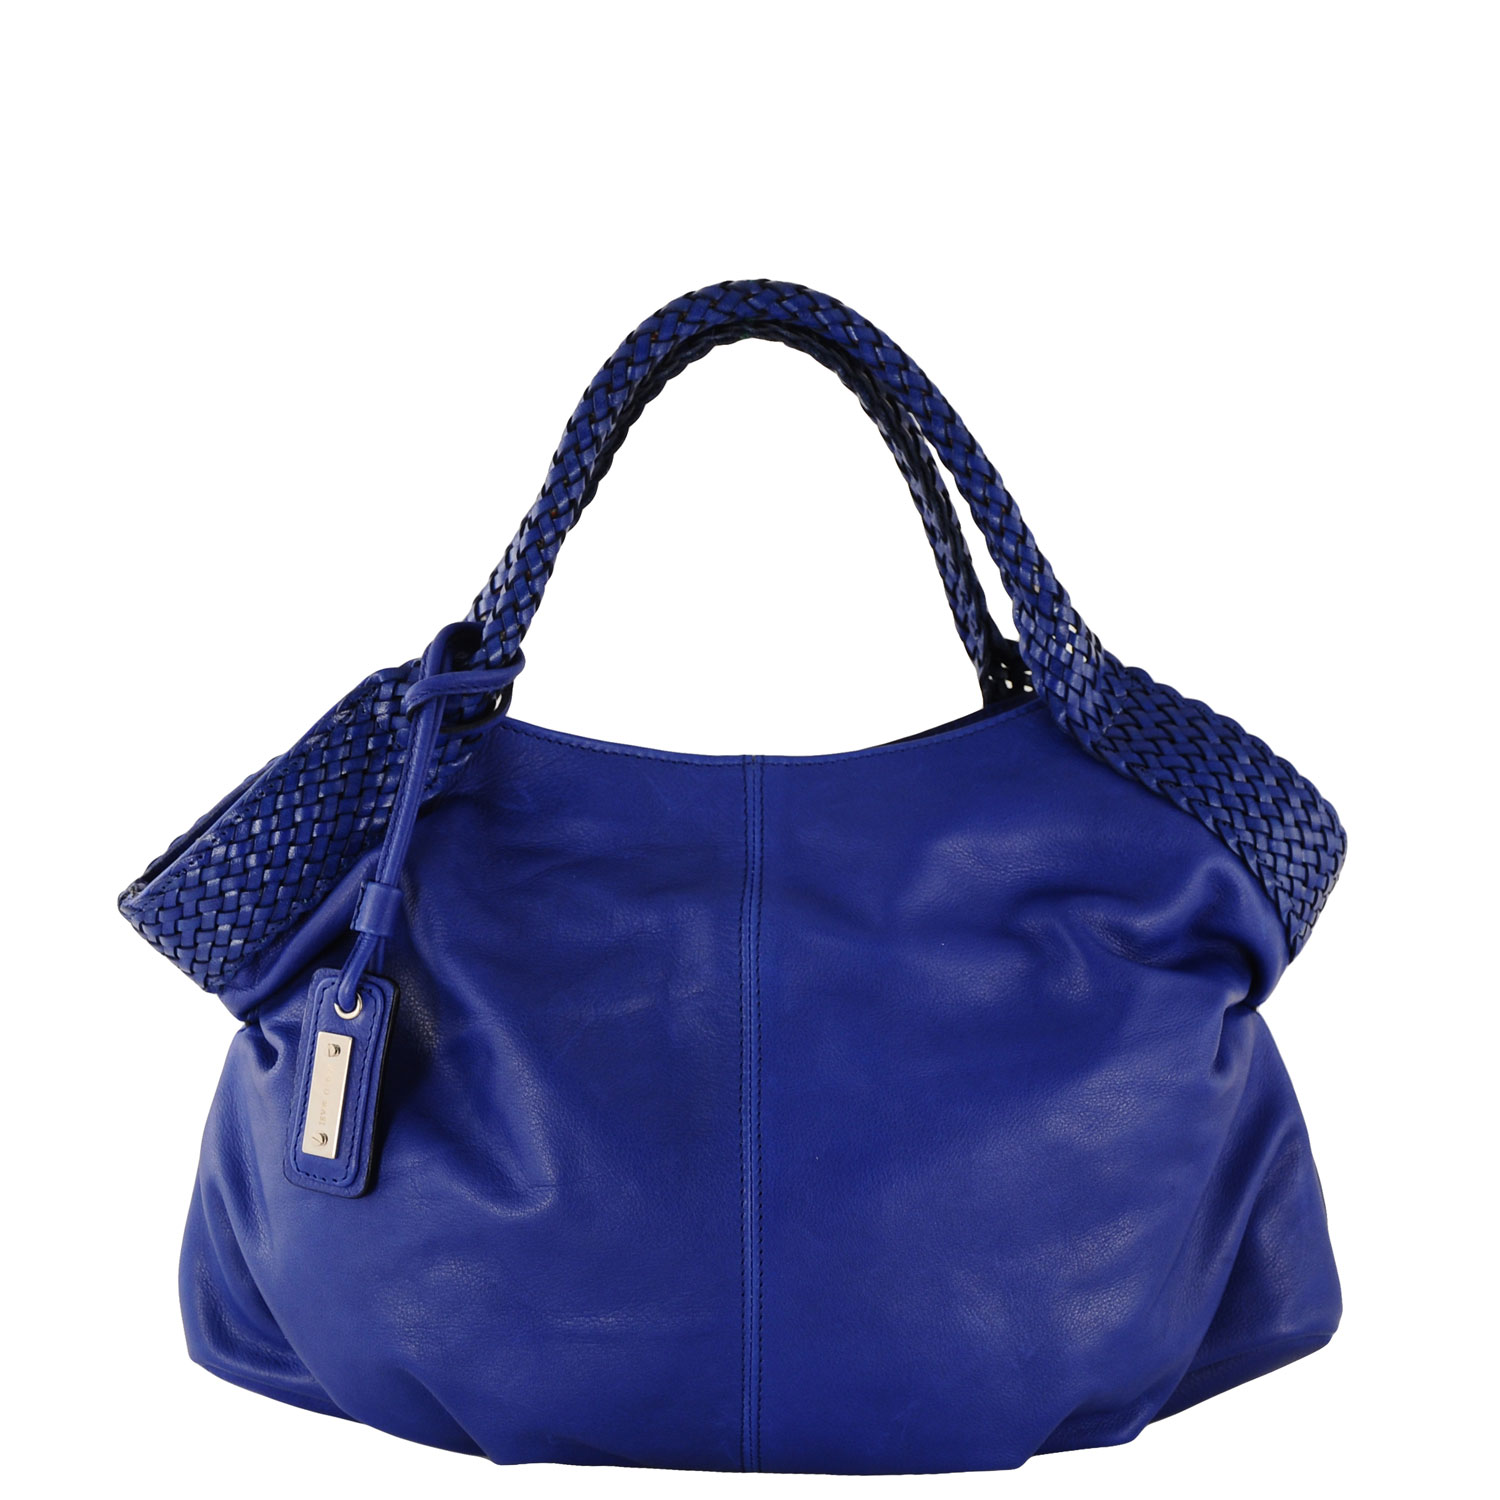 Italian Leather Handbag Paola 5197, Blue